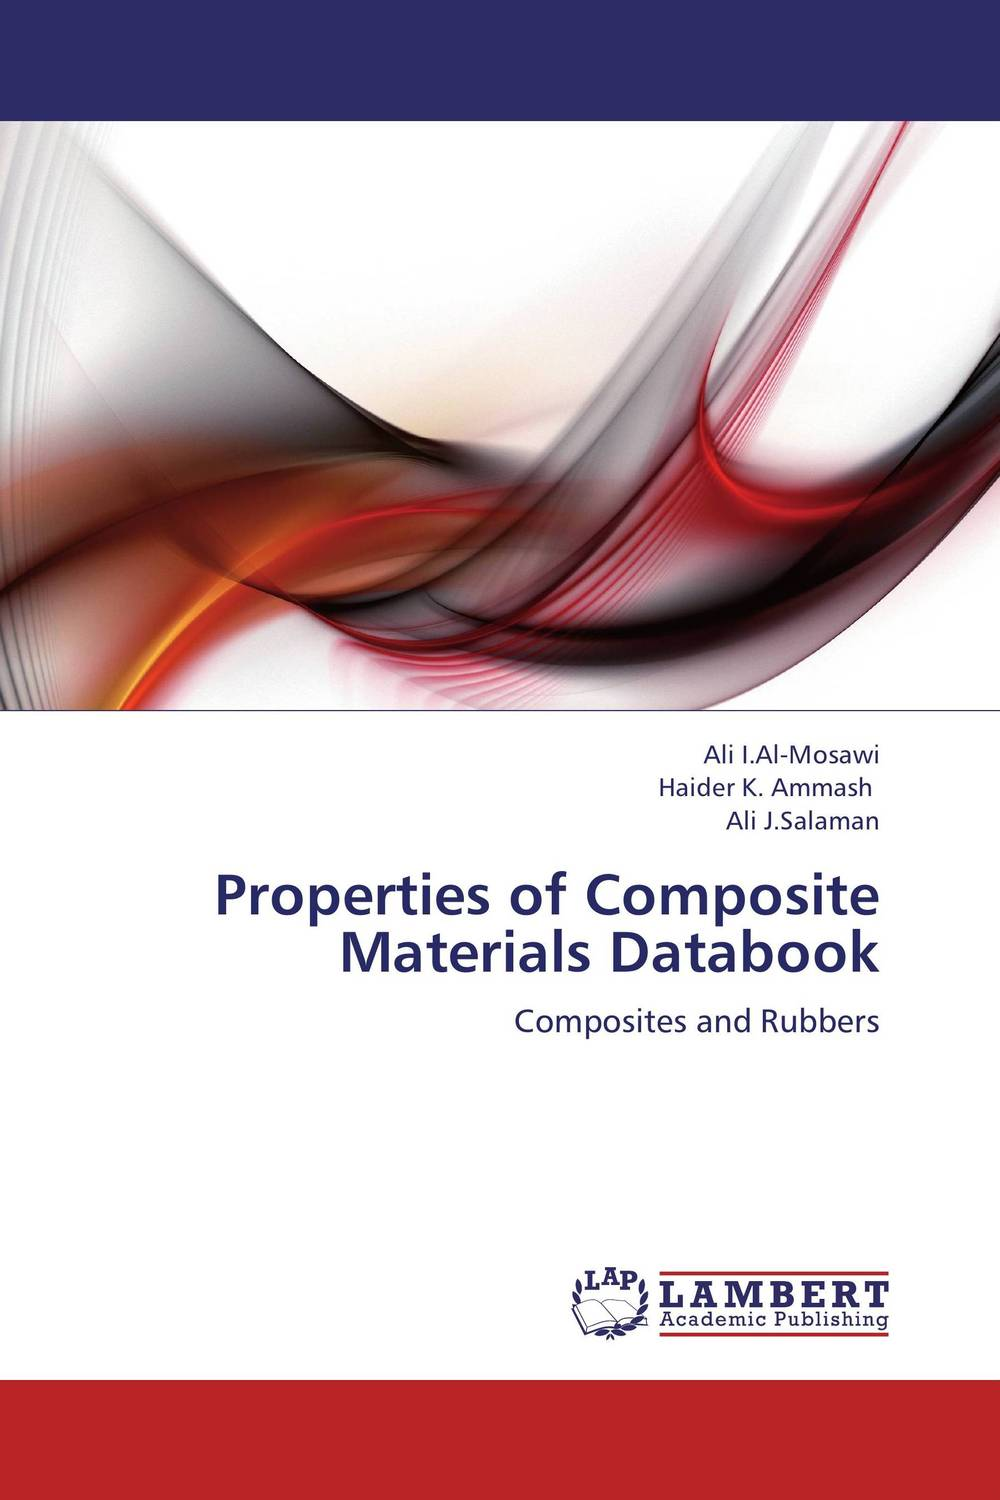 Properties of Composite Materials Databook simranjeet kaur amaninder singh and pranav gupta surface properties of dental materials under simulated tooth wear